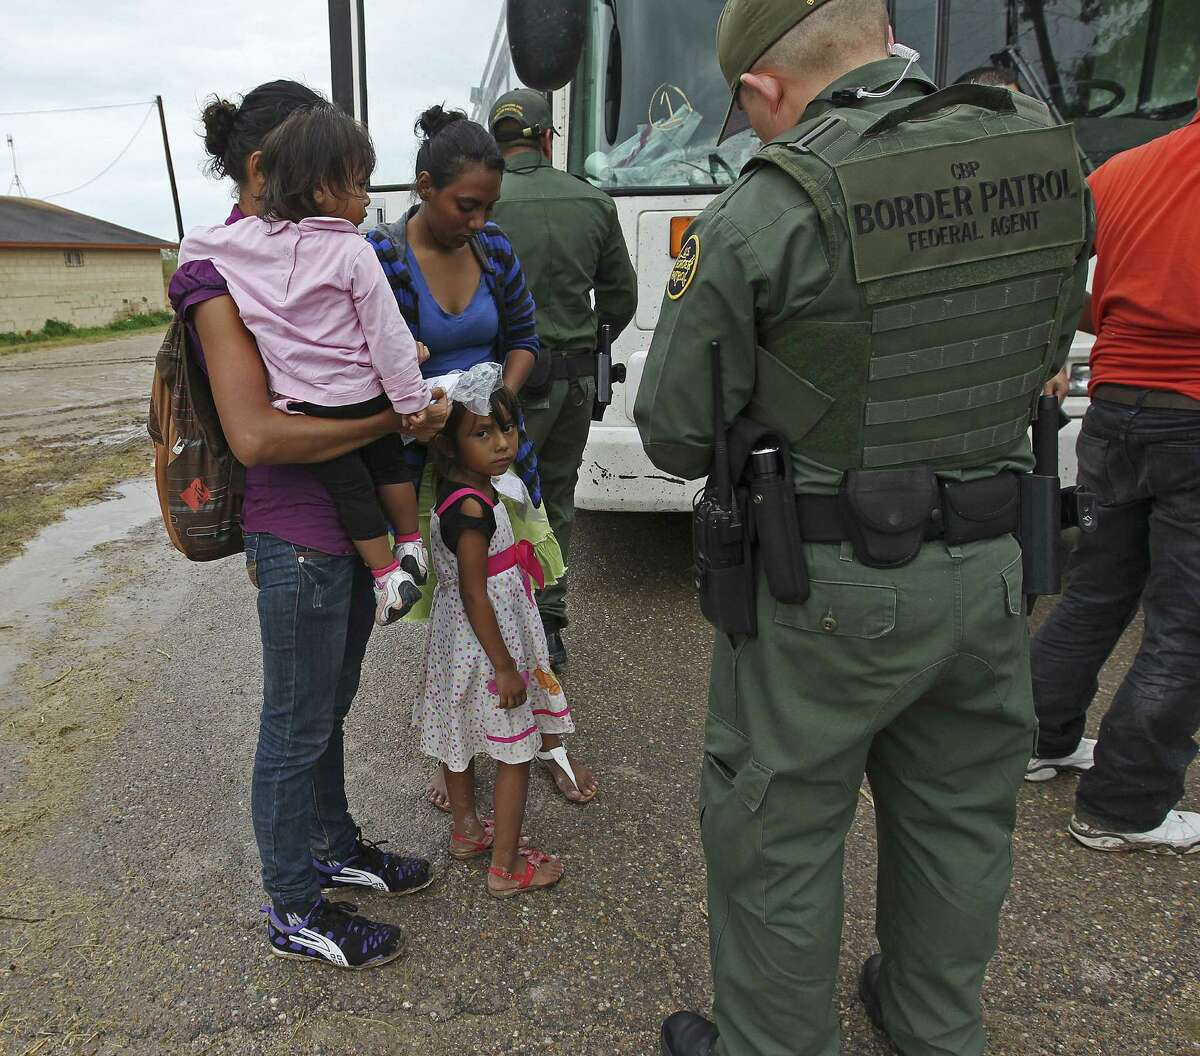 JUNE 25, 2014, 5:02 PM, GRANJENO, TEXAS 'Çô Immigrants wait to board a U.S. Government bus as Border Patrol agents process them in Granjeno, Texas. The city is just north of 'Ç£El Rincon del Diablo,'Ç¥ the Devil'ÇÃ?-s Corner, a hotbed of illegal border crossing on the Rio Grande by juvenile and mothers with children immigrants from Central